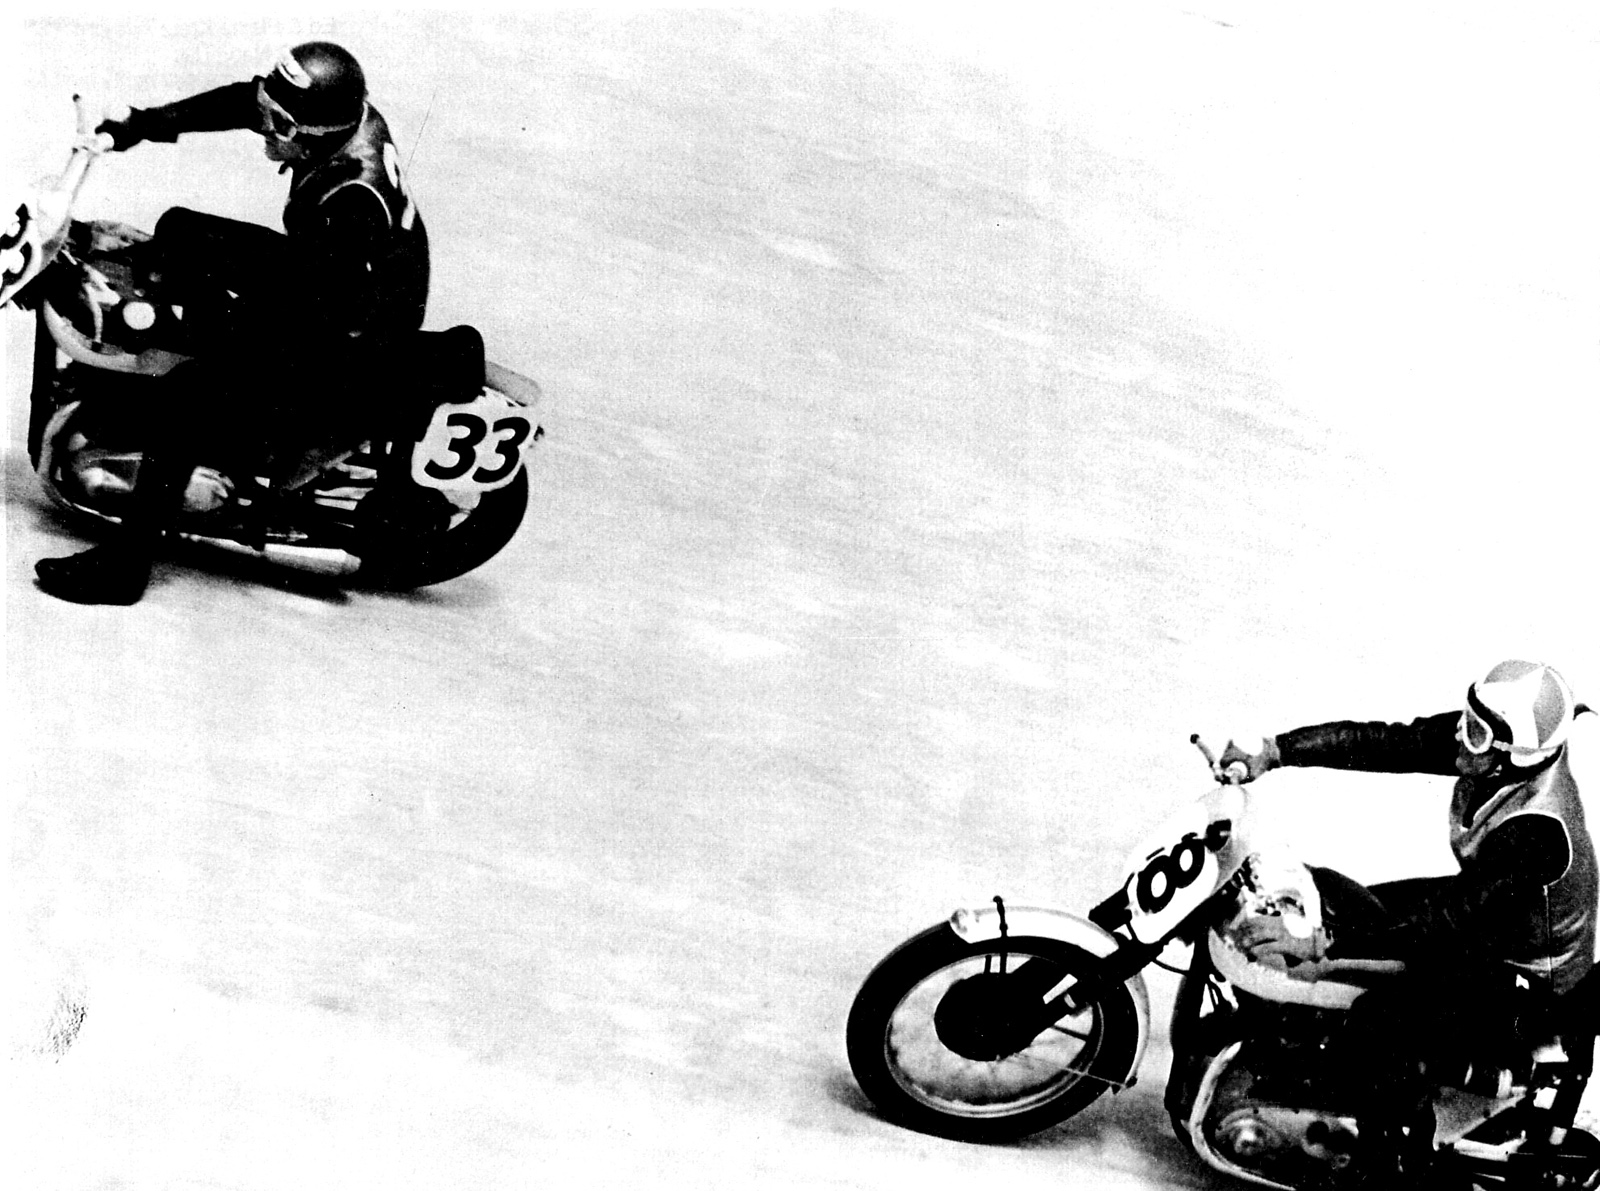 A Day at the Races: Motorcycle Racing Legend Ed Kretz Jr